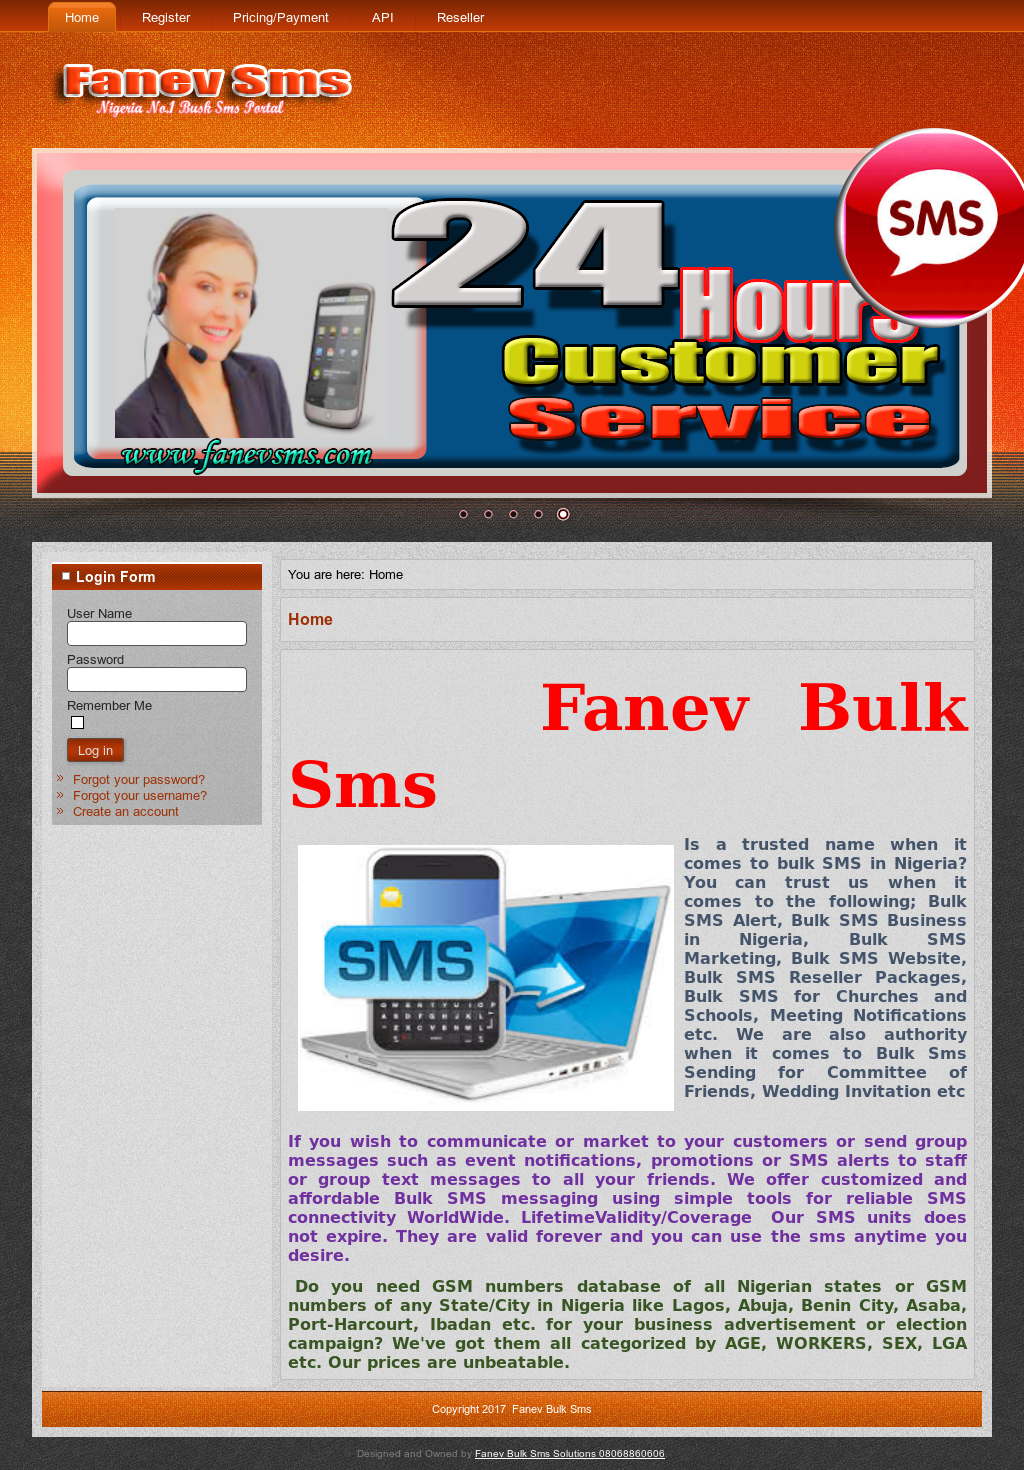 Fanev Bulk Sms Competitors, Revenue and Employees - Owler